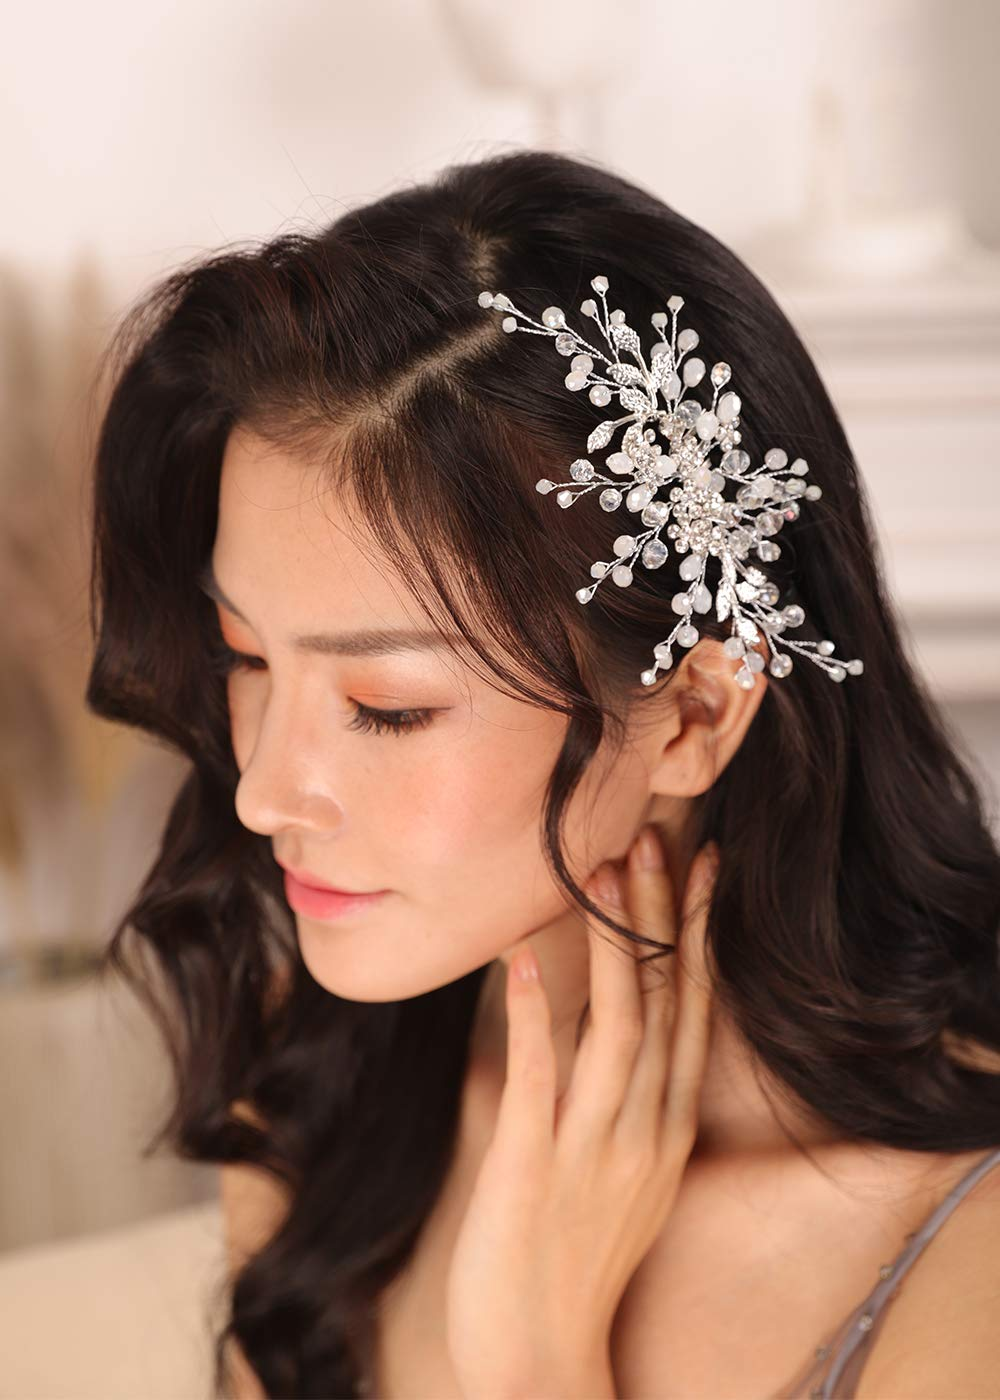 Kercisbeauty Boho Ivory Beads Side Hair Combs for Women and Girls Wedding Crystal Boho Side Headpiece Flower Hair Dress